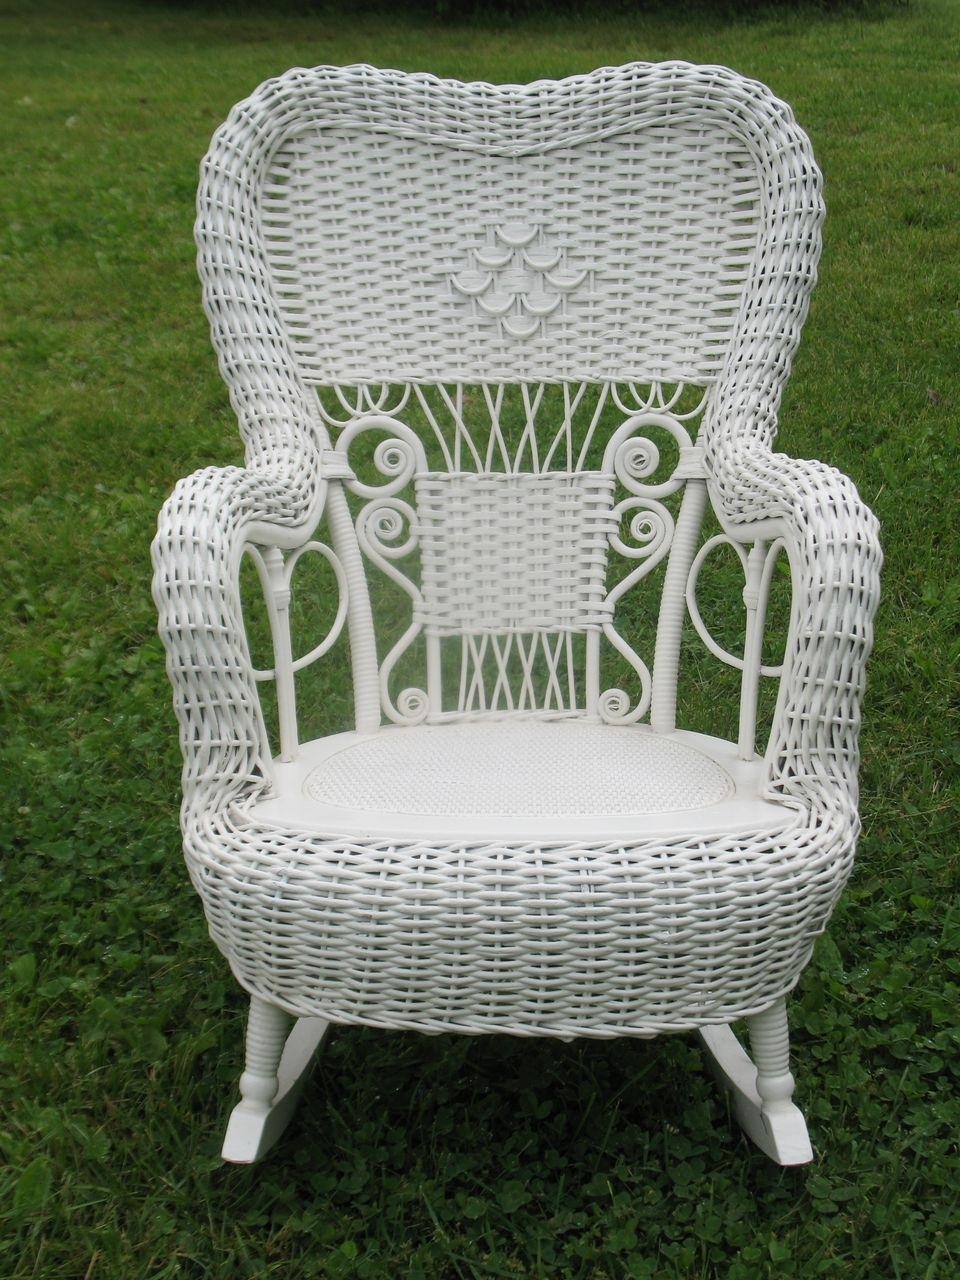 Chair | Wicker Porch Rockers Outdoor Furniture Wooden Garden Rocking Intended For White Patio Rocking Chairs (#2 of 15)